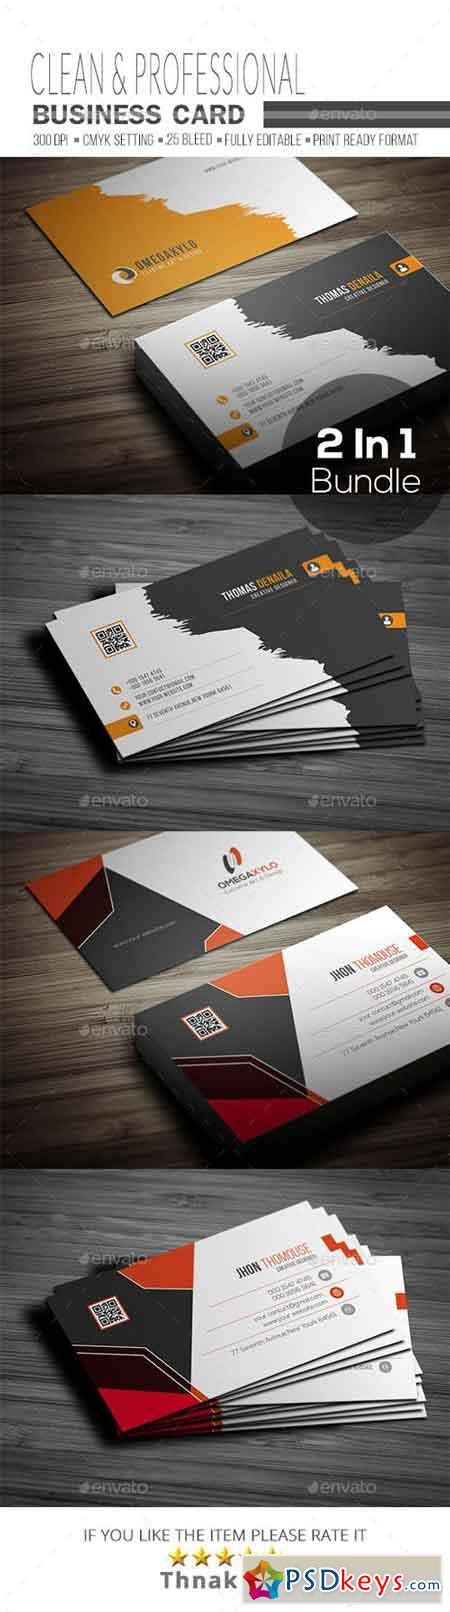 200 business card templates bundle 1 business card bundle 2 in 1 19725482 187 free